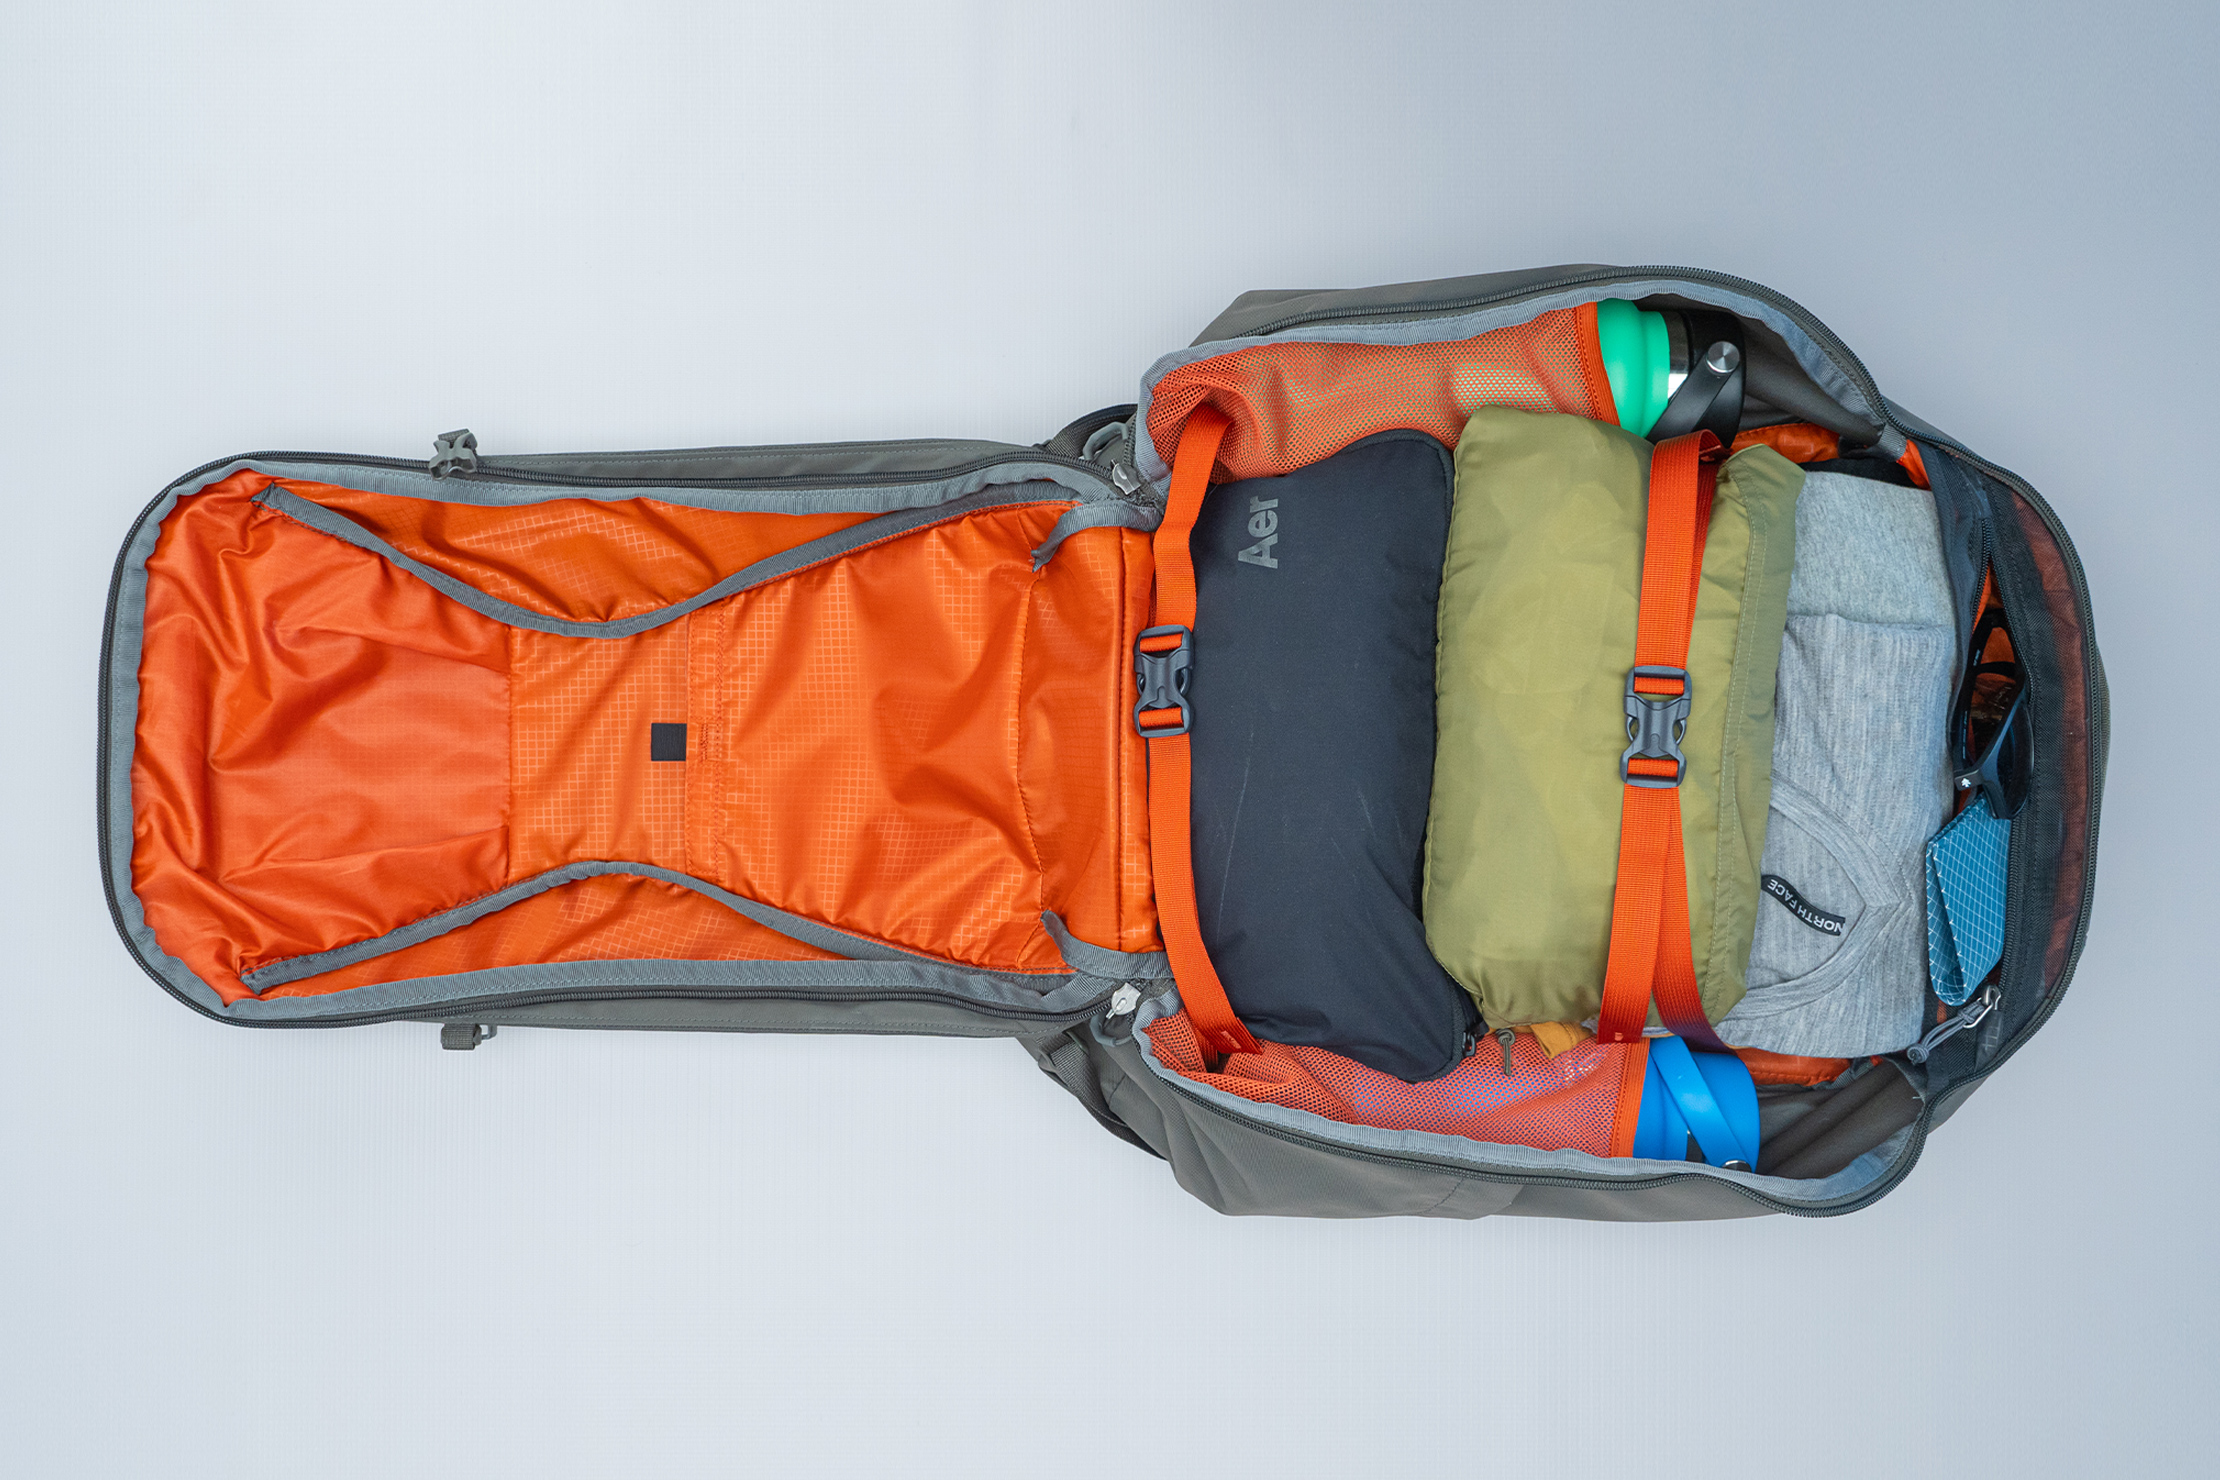 Gregory Detour 40 Backpack Interior Main Compartment Filled